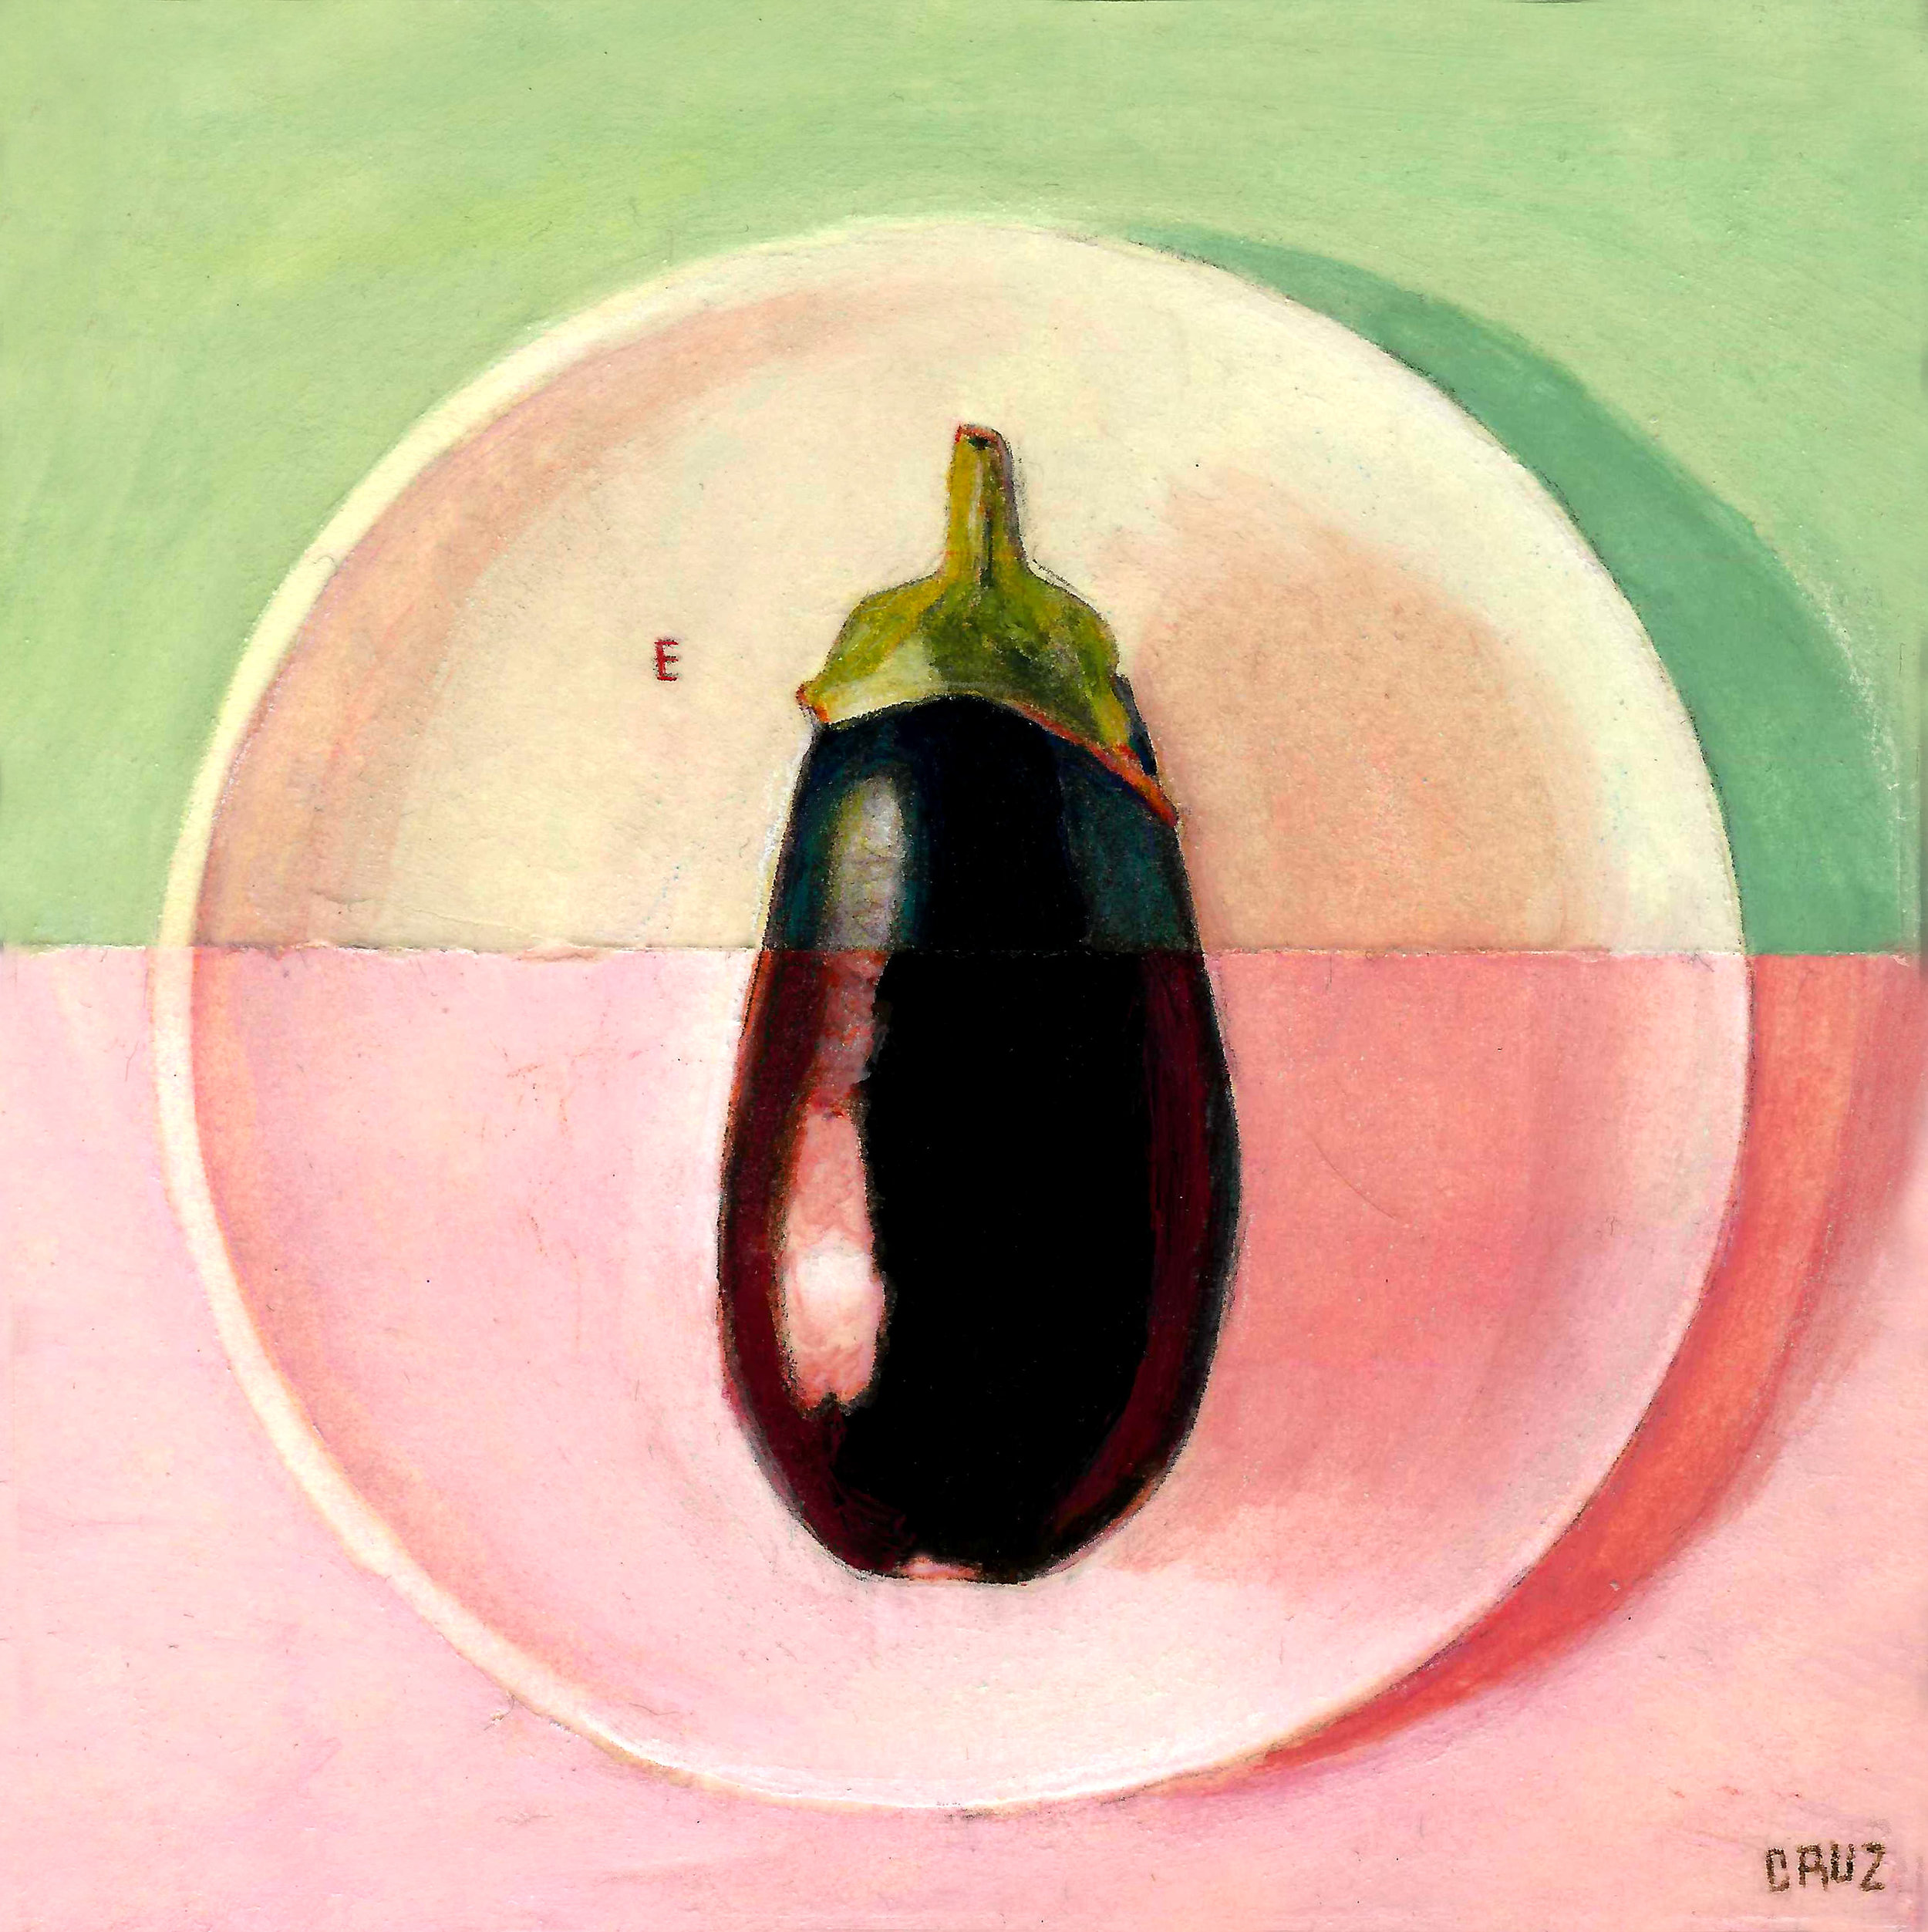 E is for Eggplant